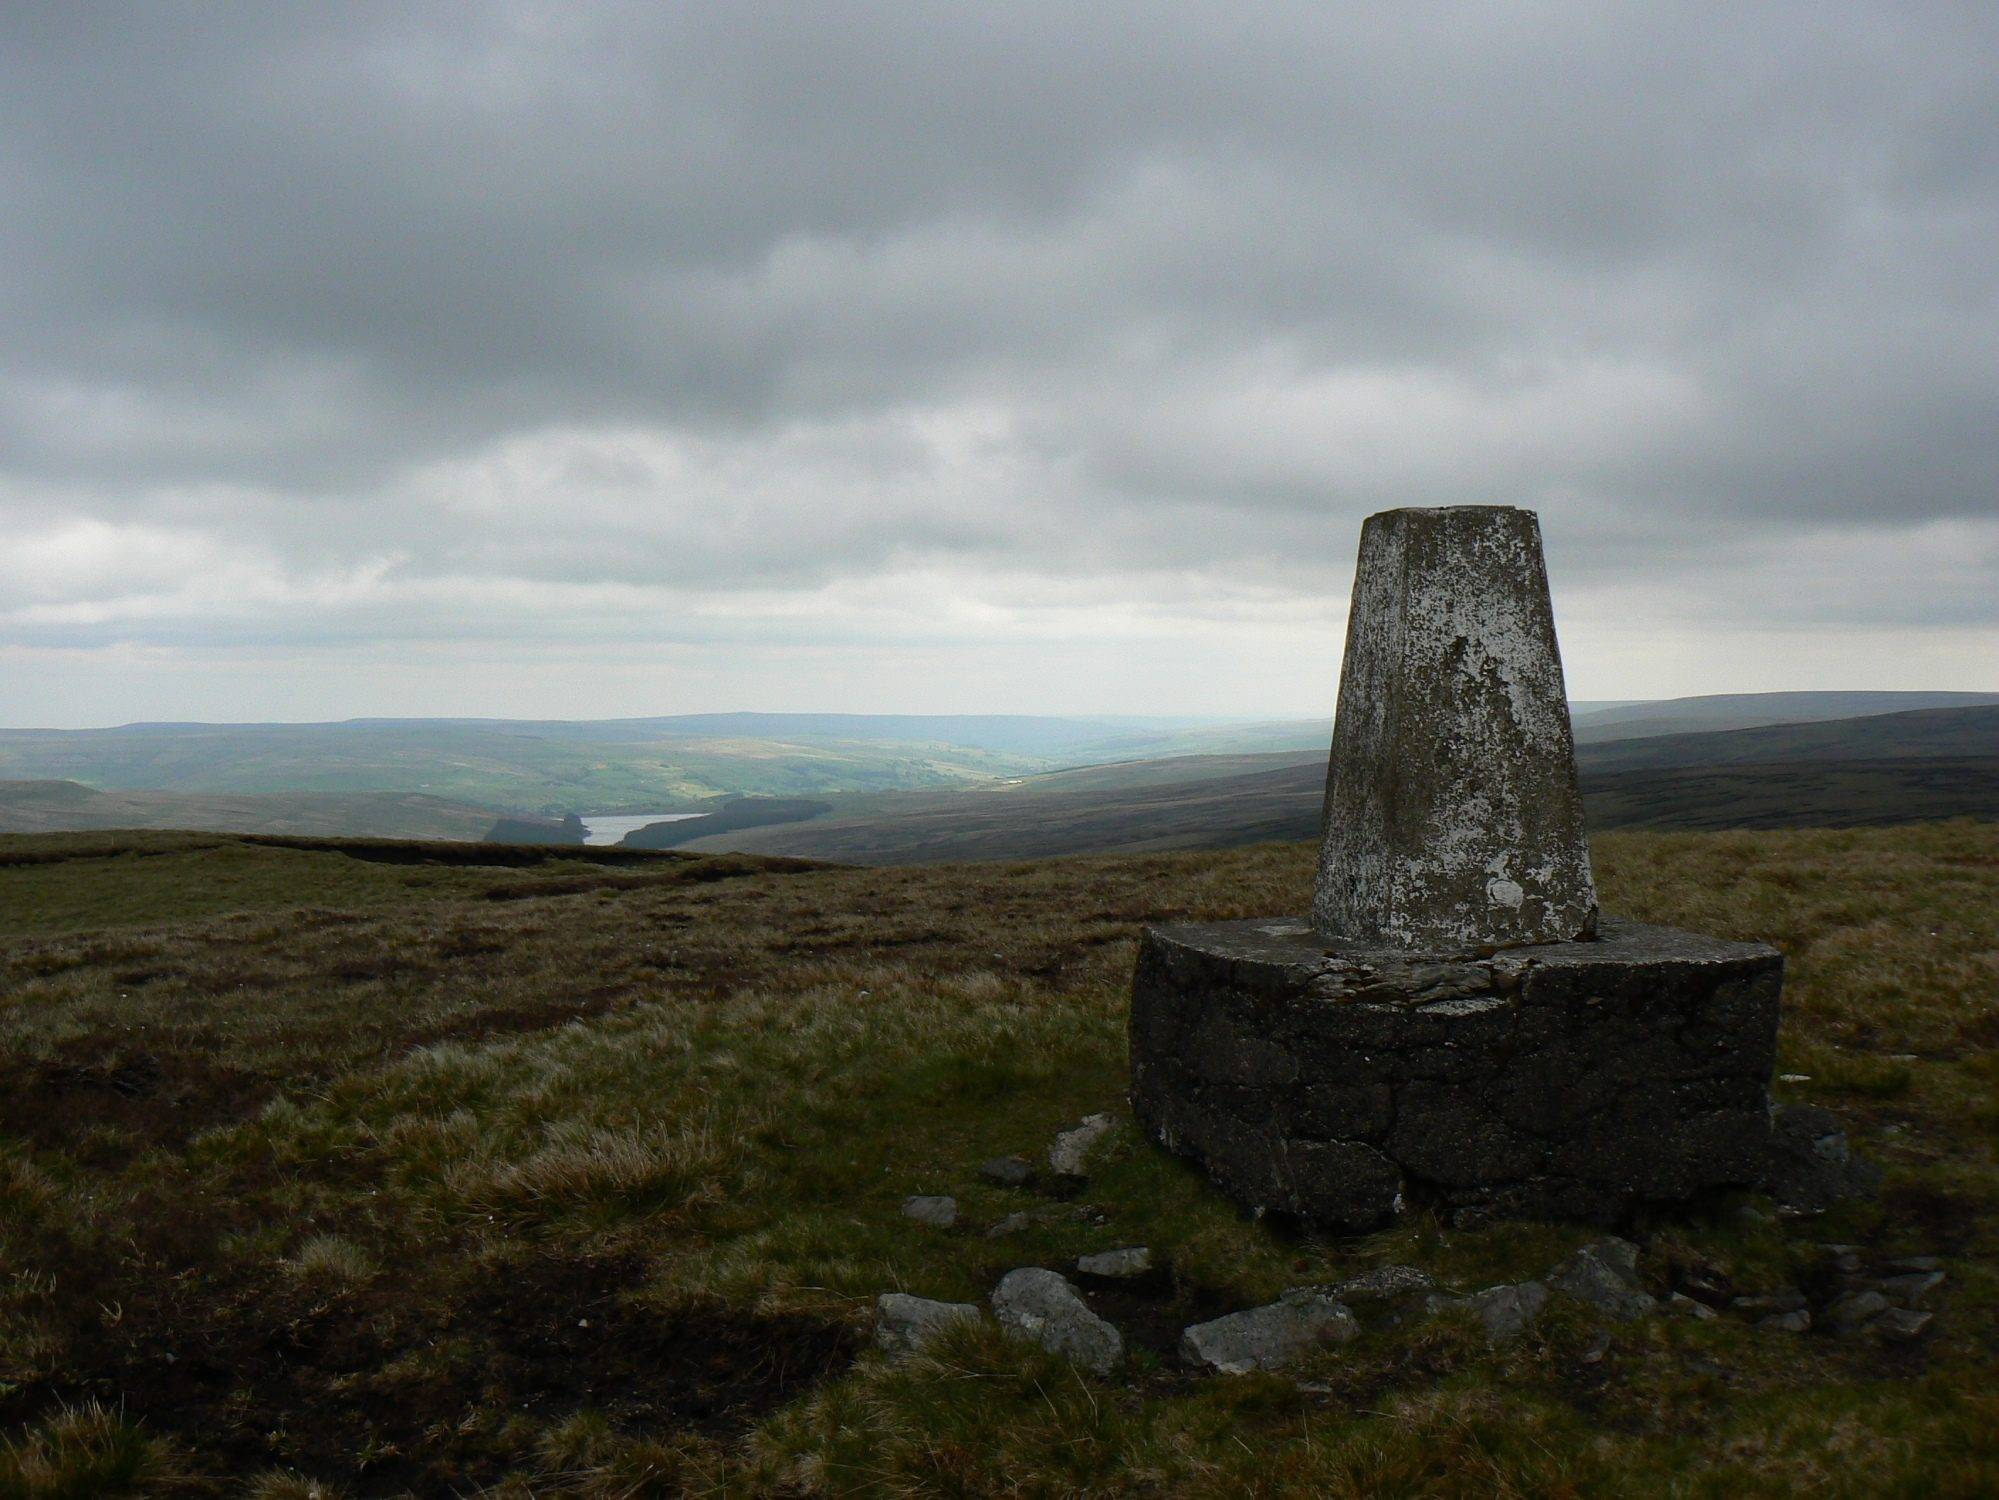 The trig point on Burnhope Seat